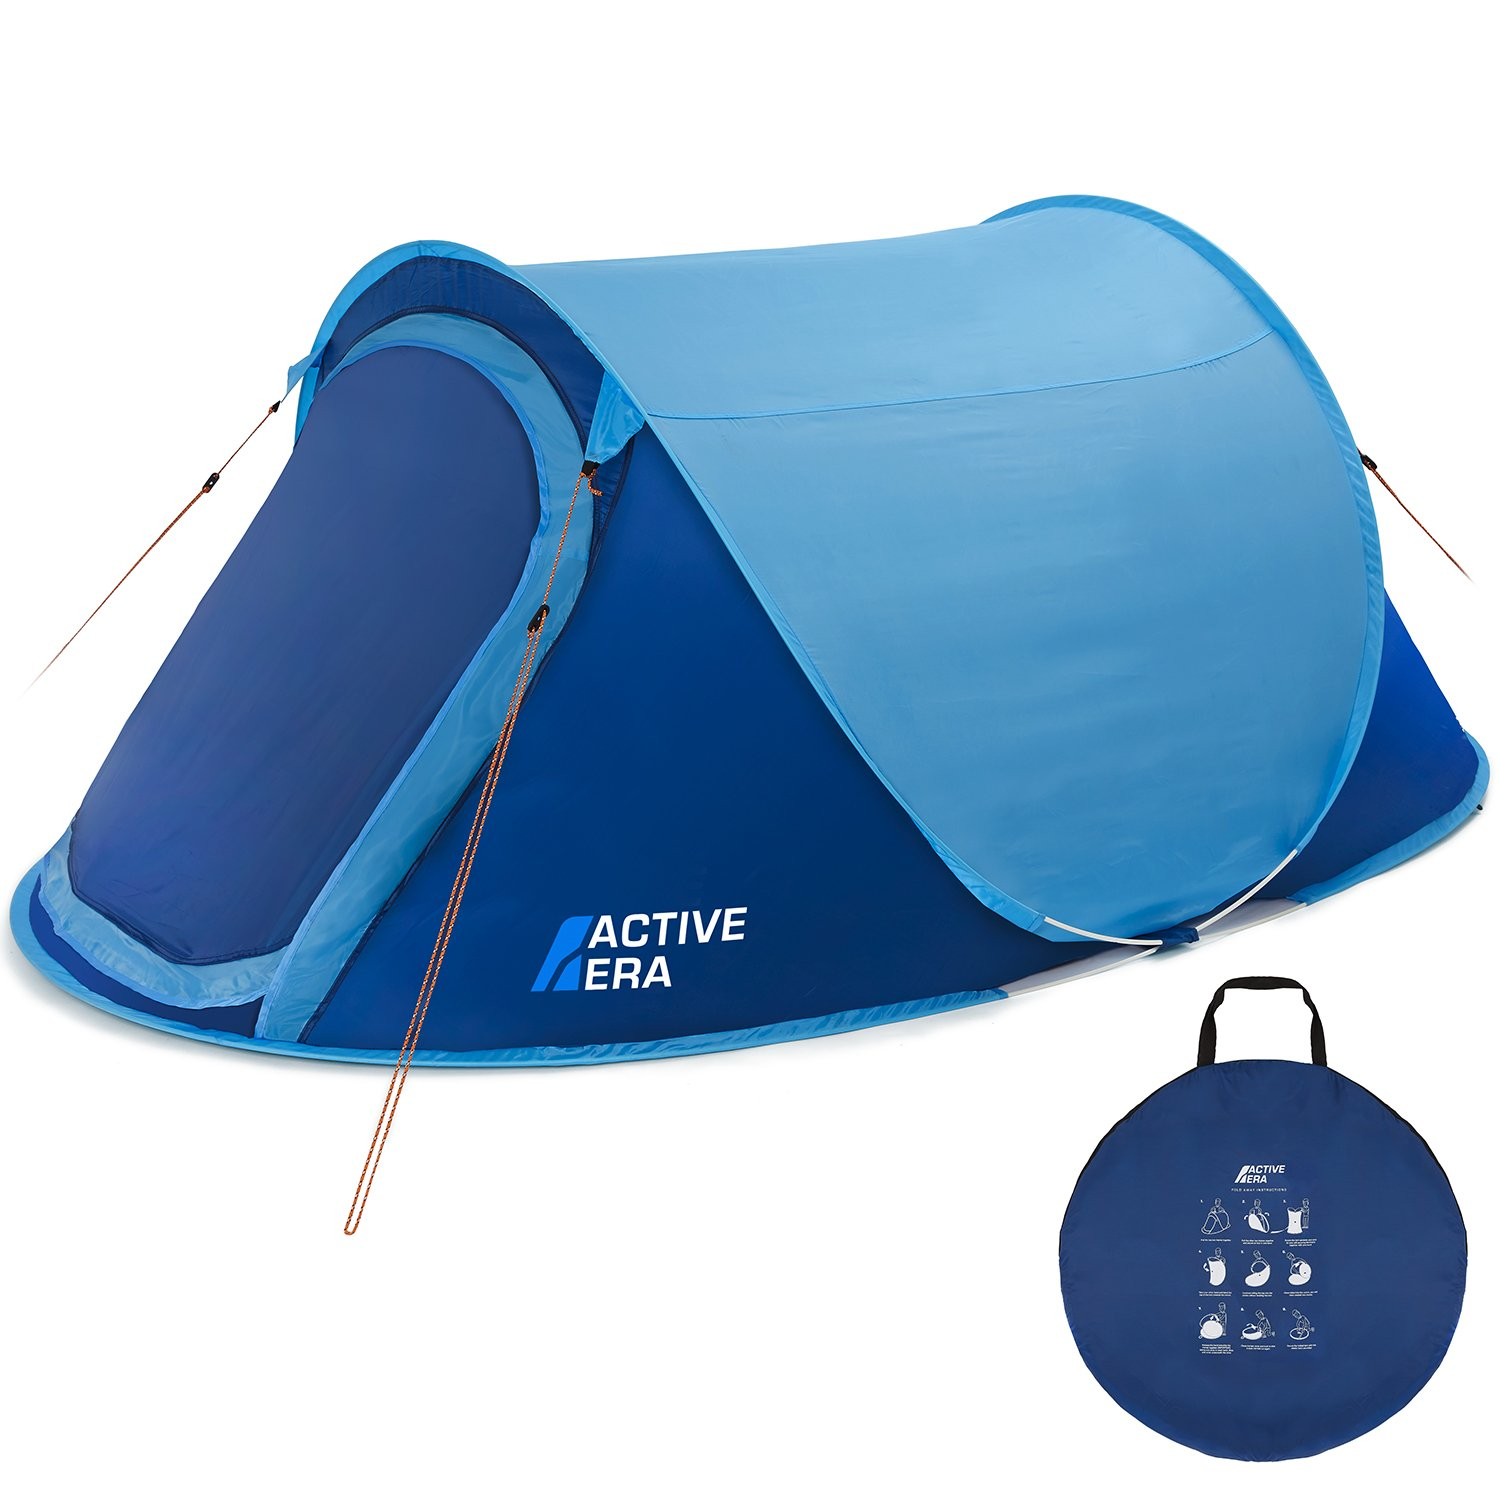 Active Era® Large 2 Person Pop Up Tent - Water Resistant Ventilated and Durable Amazon.co.uk Sports u0026 Outdoors  sc 1 st  Amazon UK : pop up tent sports direct - memphite.com